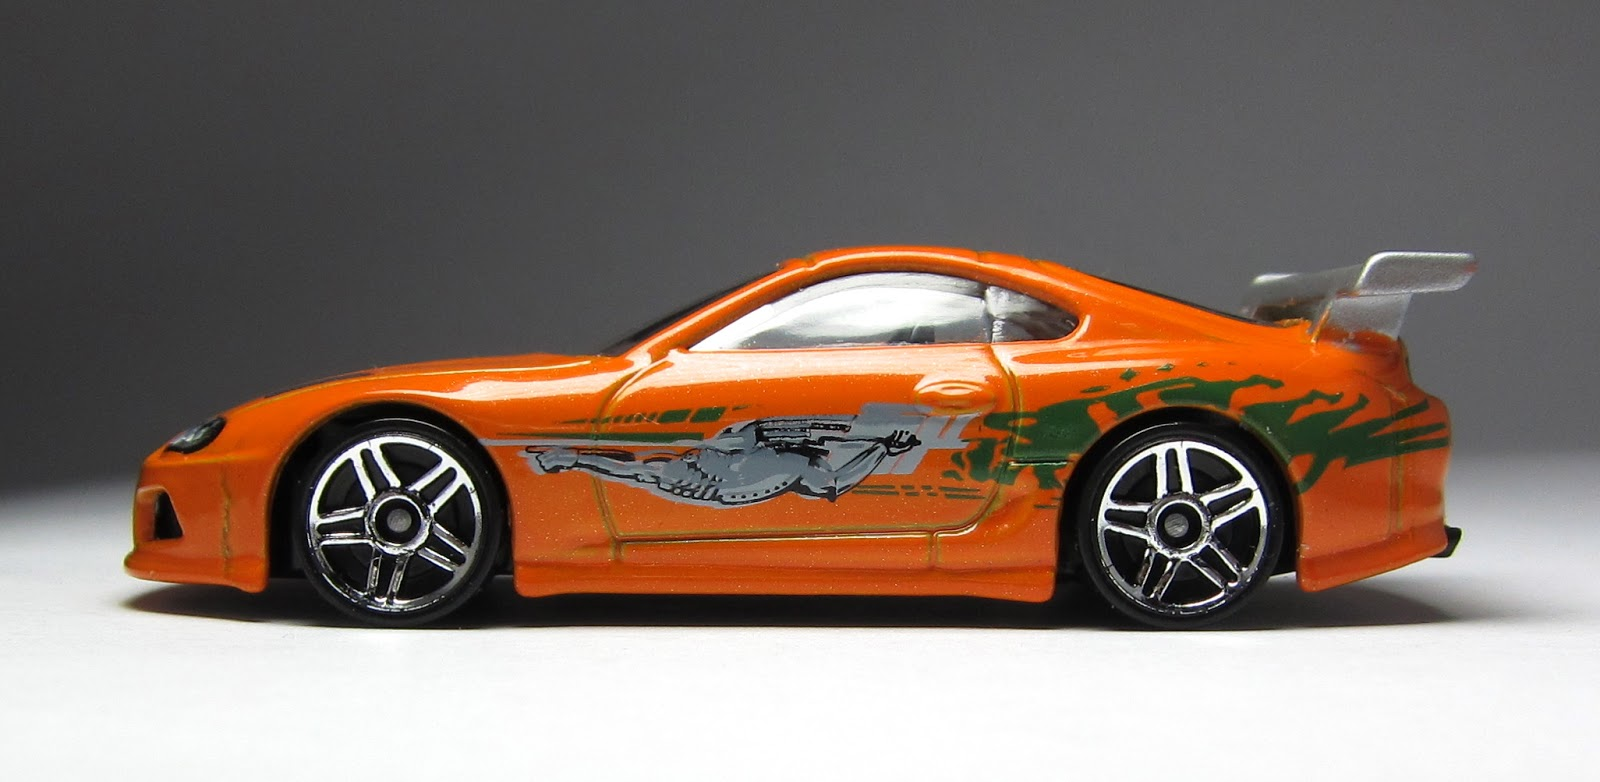 Toyota Supra From The Fast And The Furious First Look Hot Wheels Fast Furious Part 1 Thelamleygroup